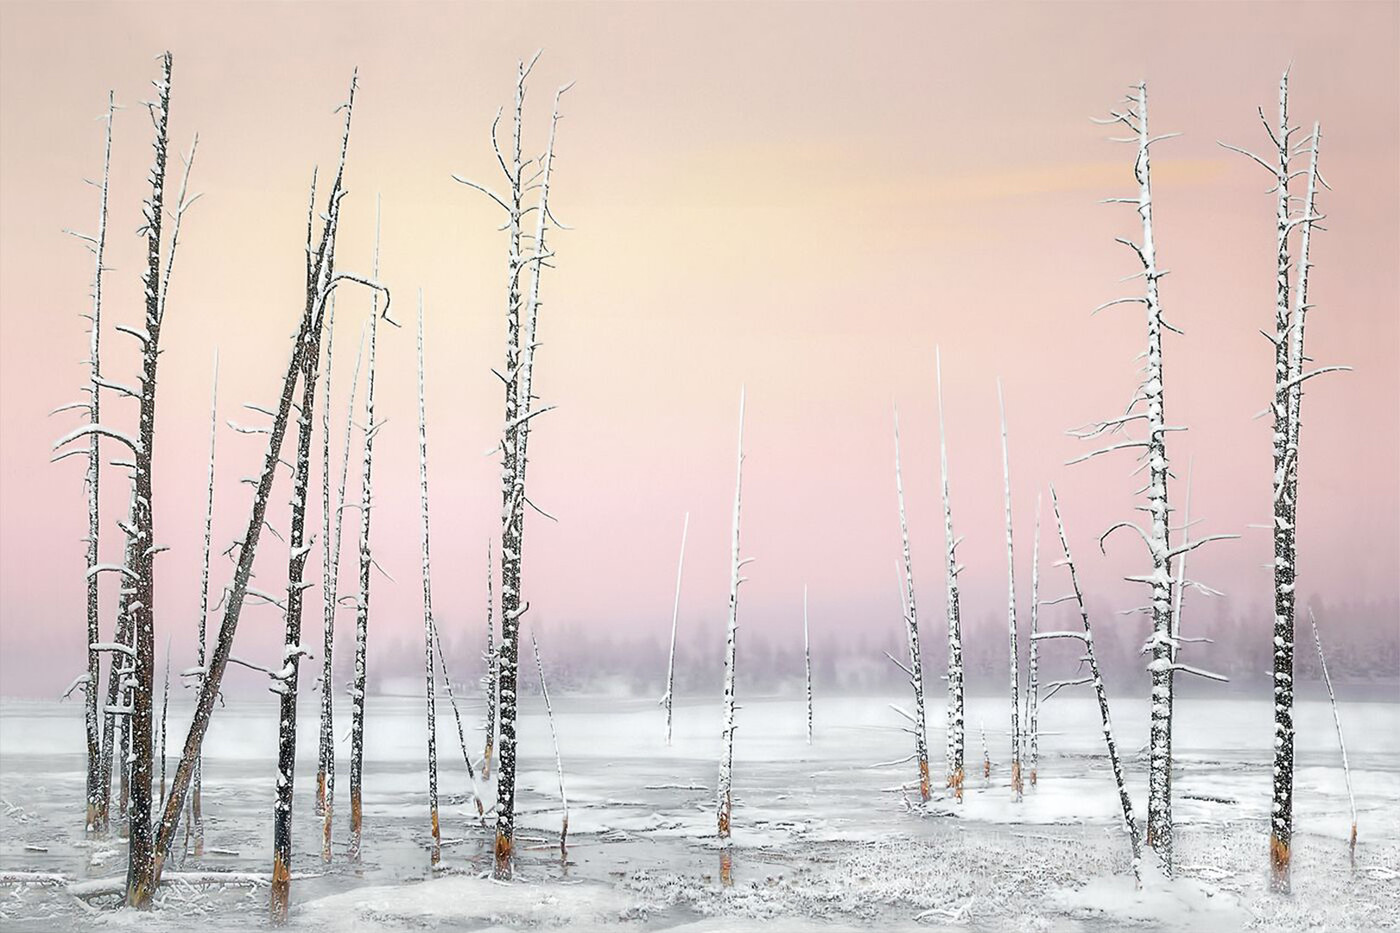 16 SKELETAL TREES YELLOWSTONE by Pam Sherren